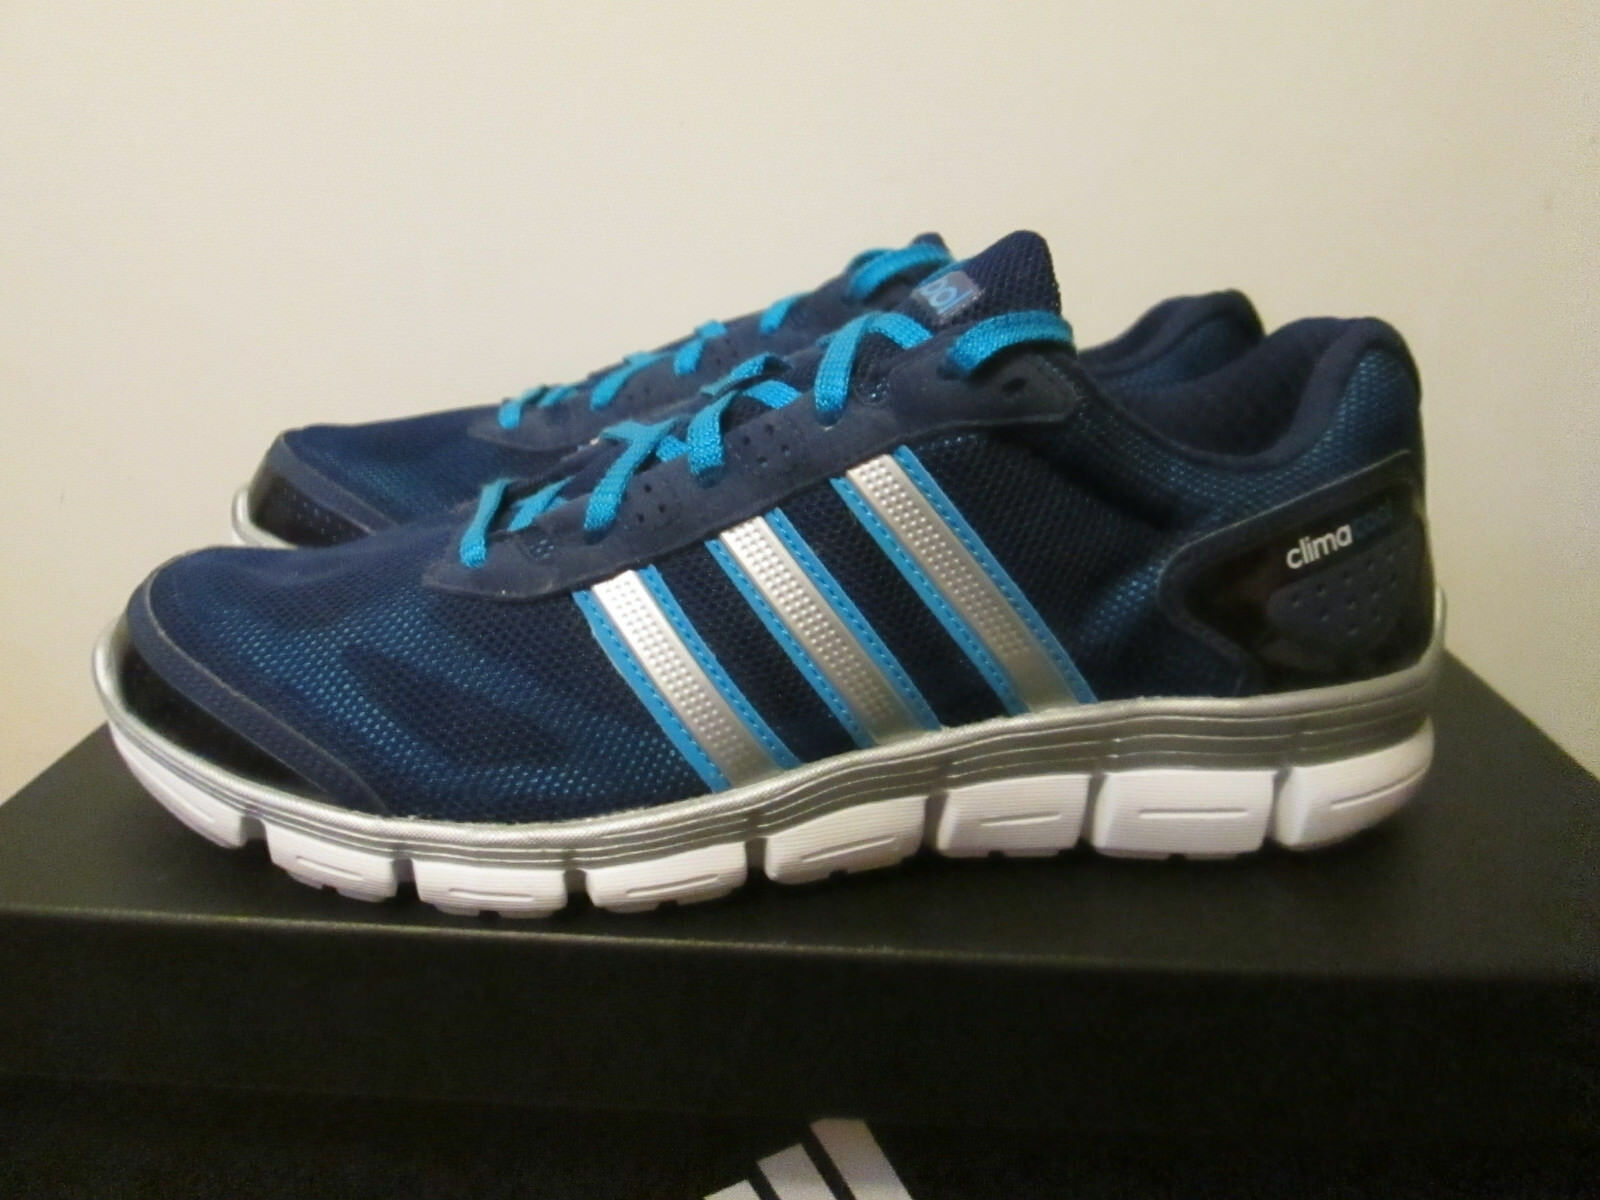 Adidas Clima Blue Cool Fresh Night Blue/White/Solar Blue Clima Lt Wt Running Shoes 8.5 NEW e9c8e3